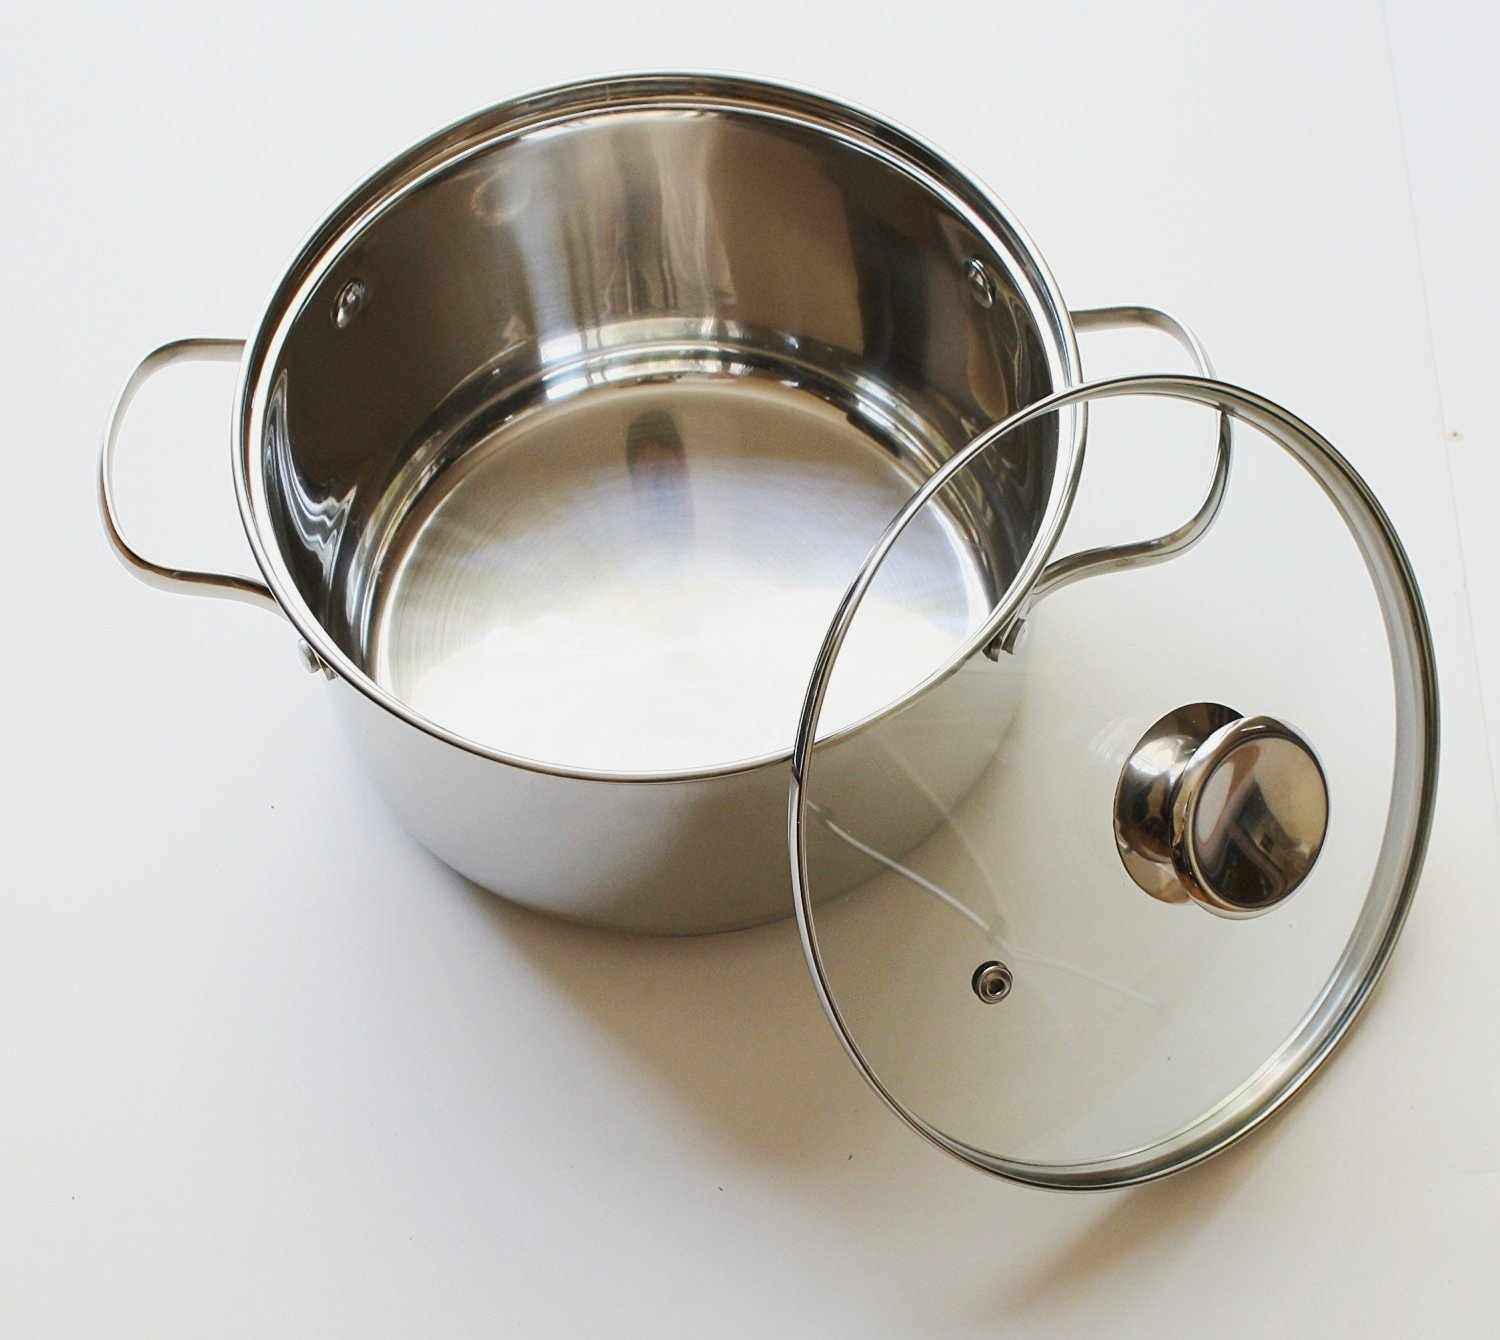 Cook N Home NC-00313 Double Boiler Steamer 4Qt silver by Cook N Home (Image #3)